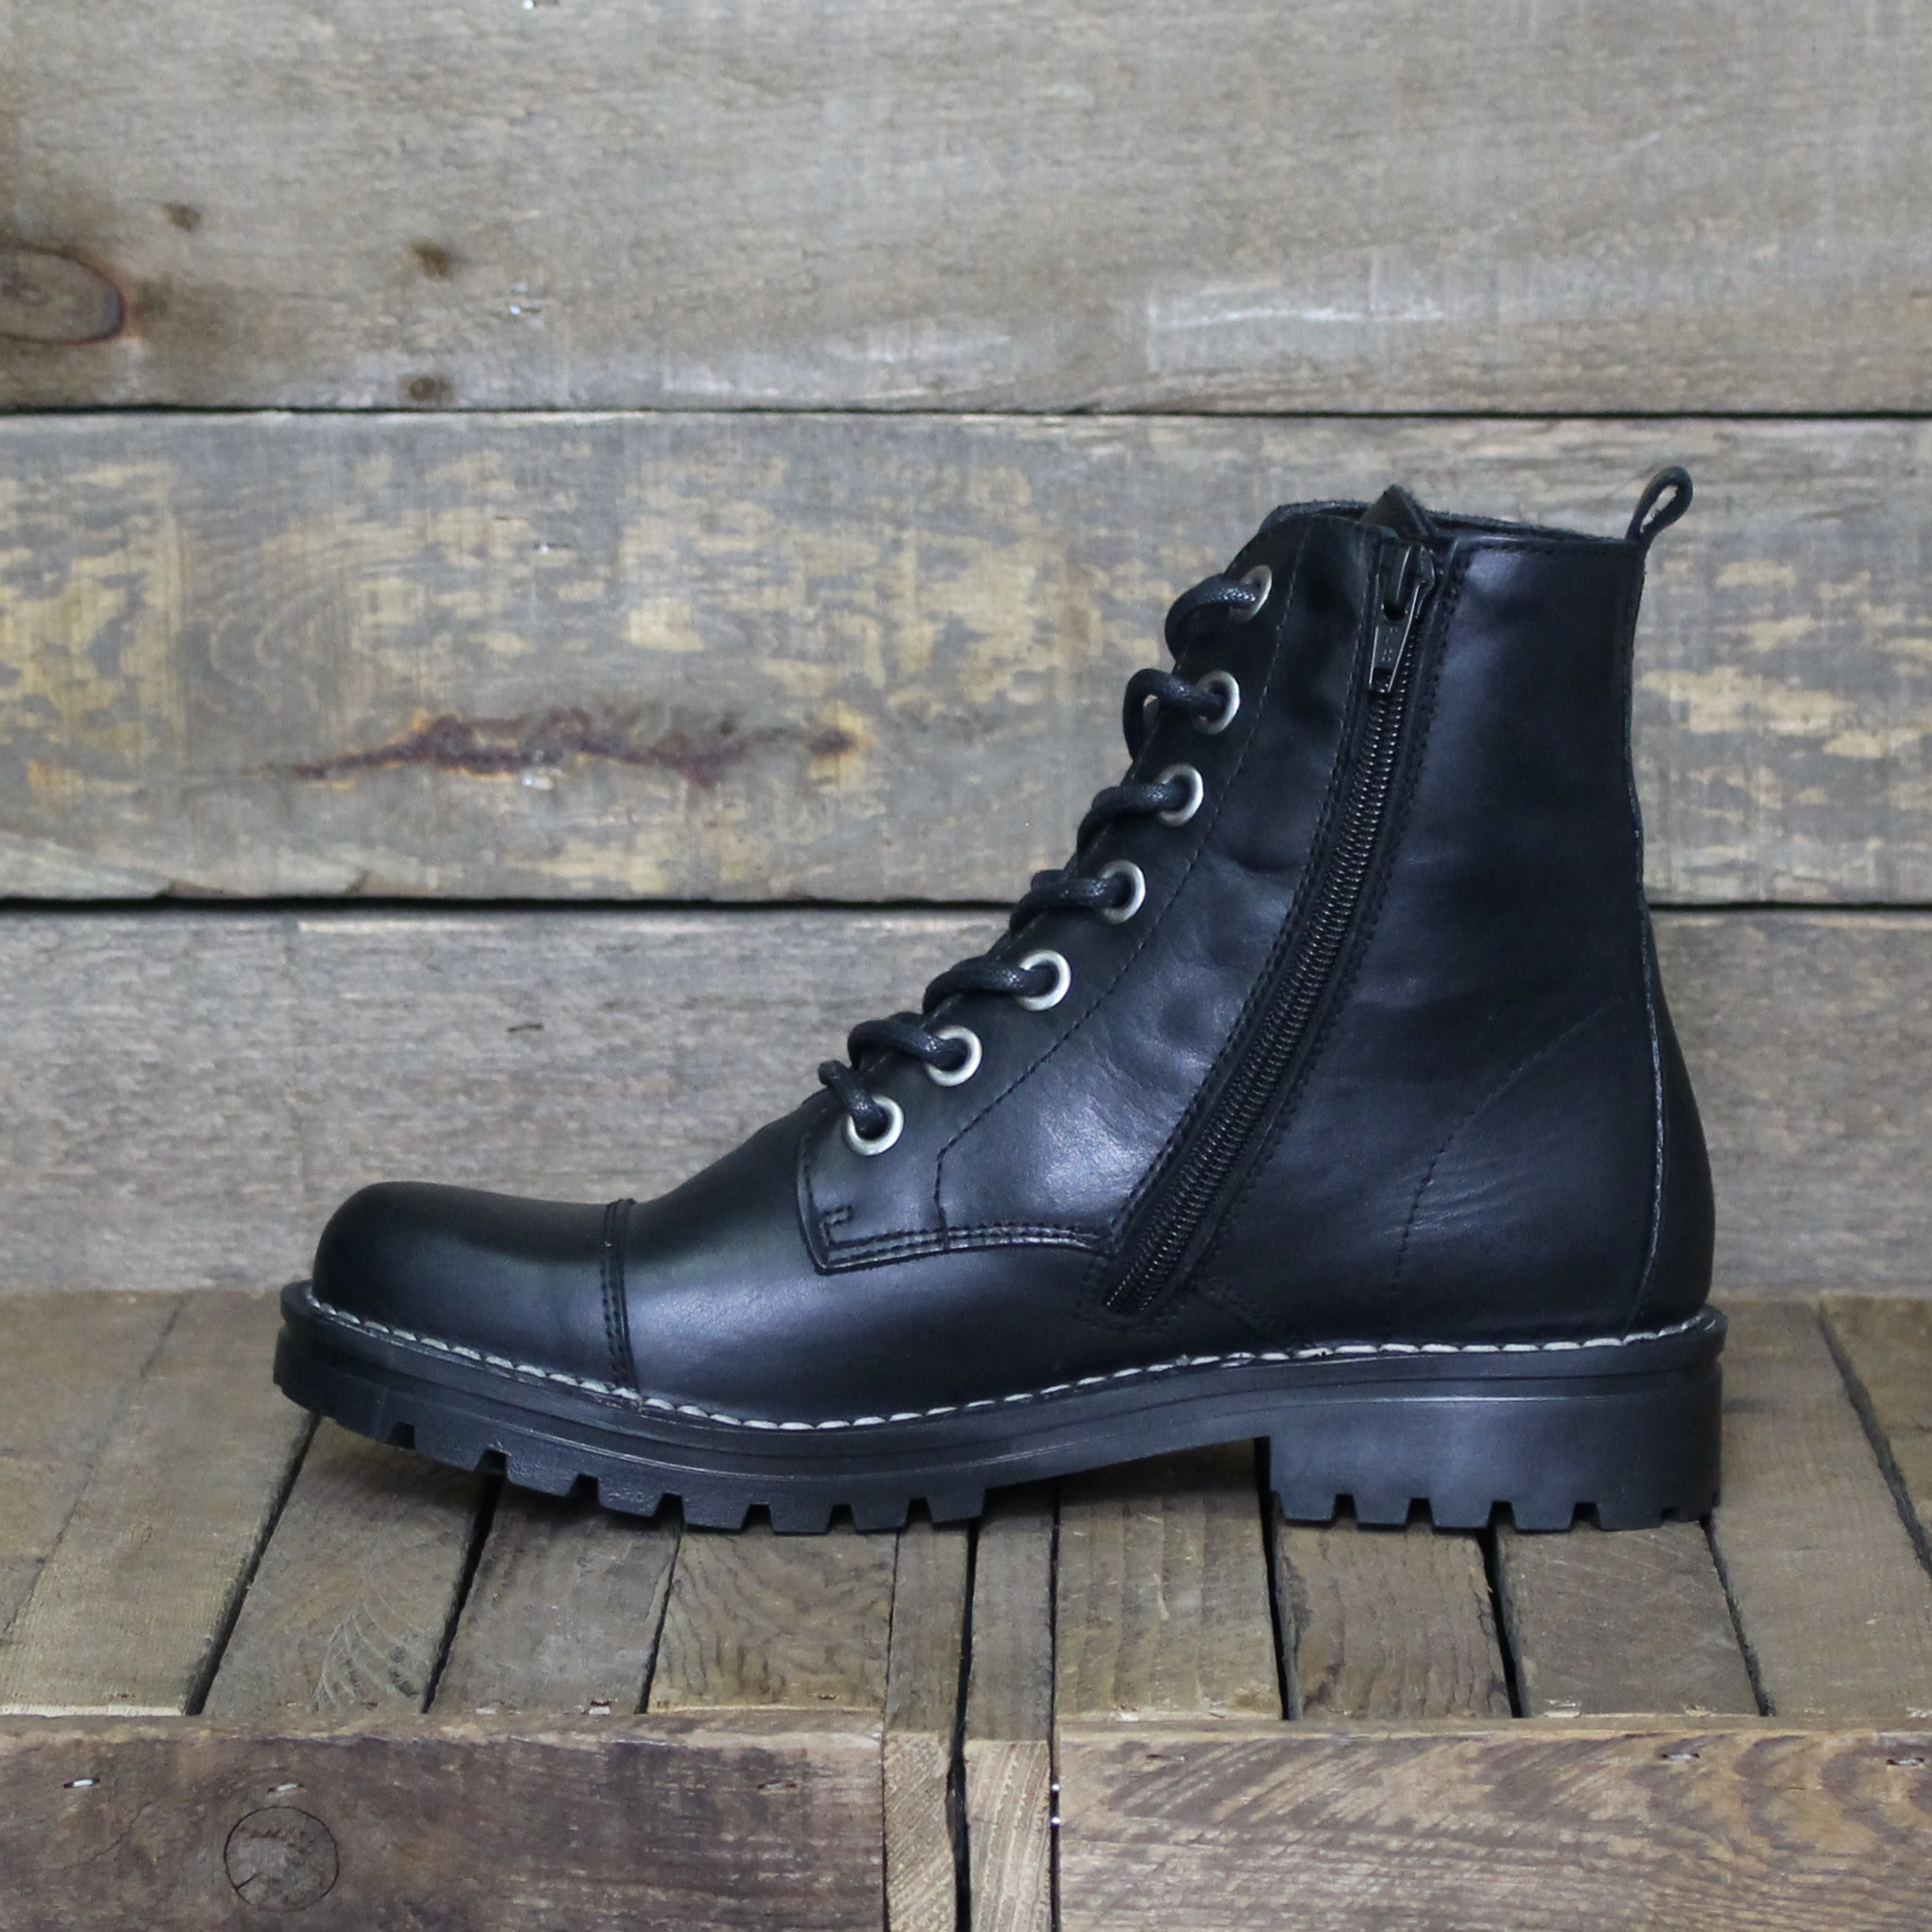 Chacal Chacal - 5265 Madison Leather - Black